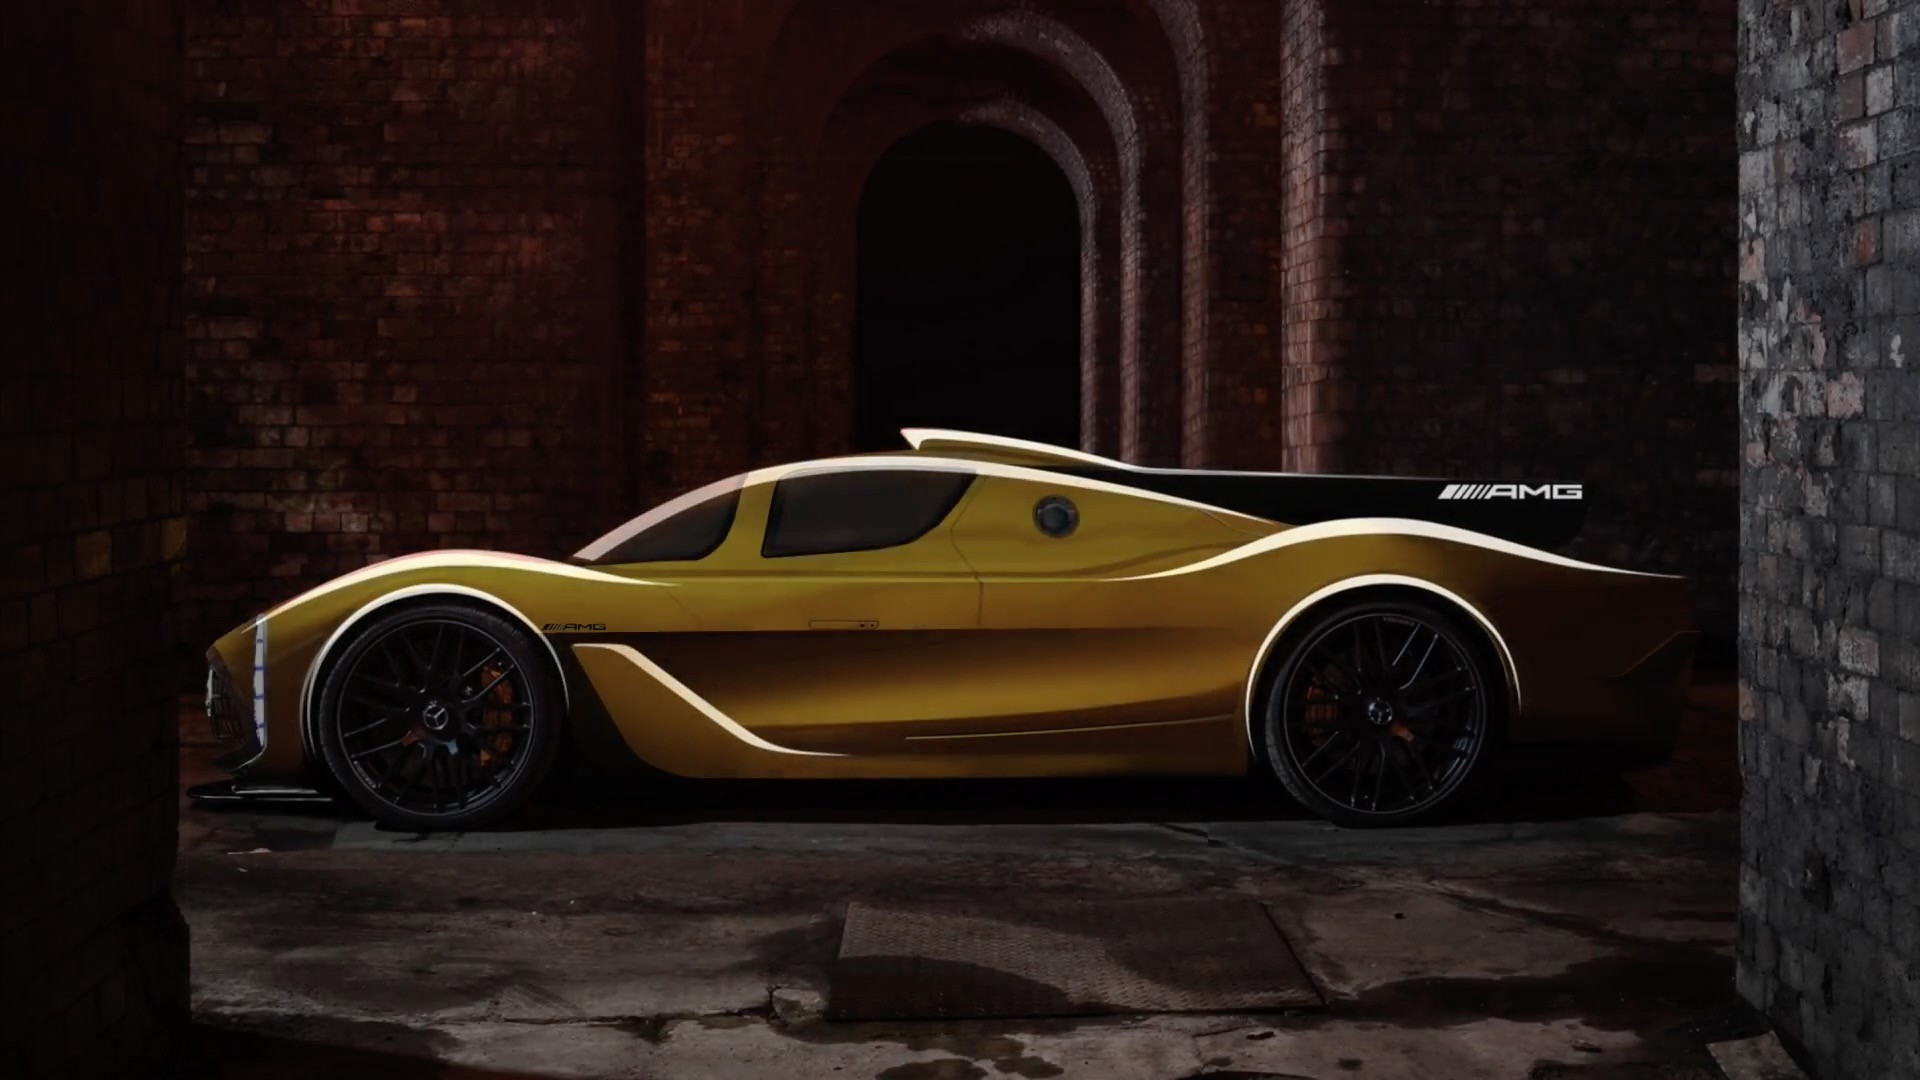 Mercedes amg project one hypercar rendered by peisert for Mercedes benz amg project one